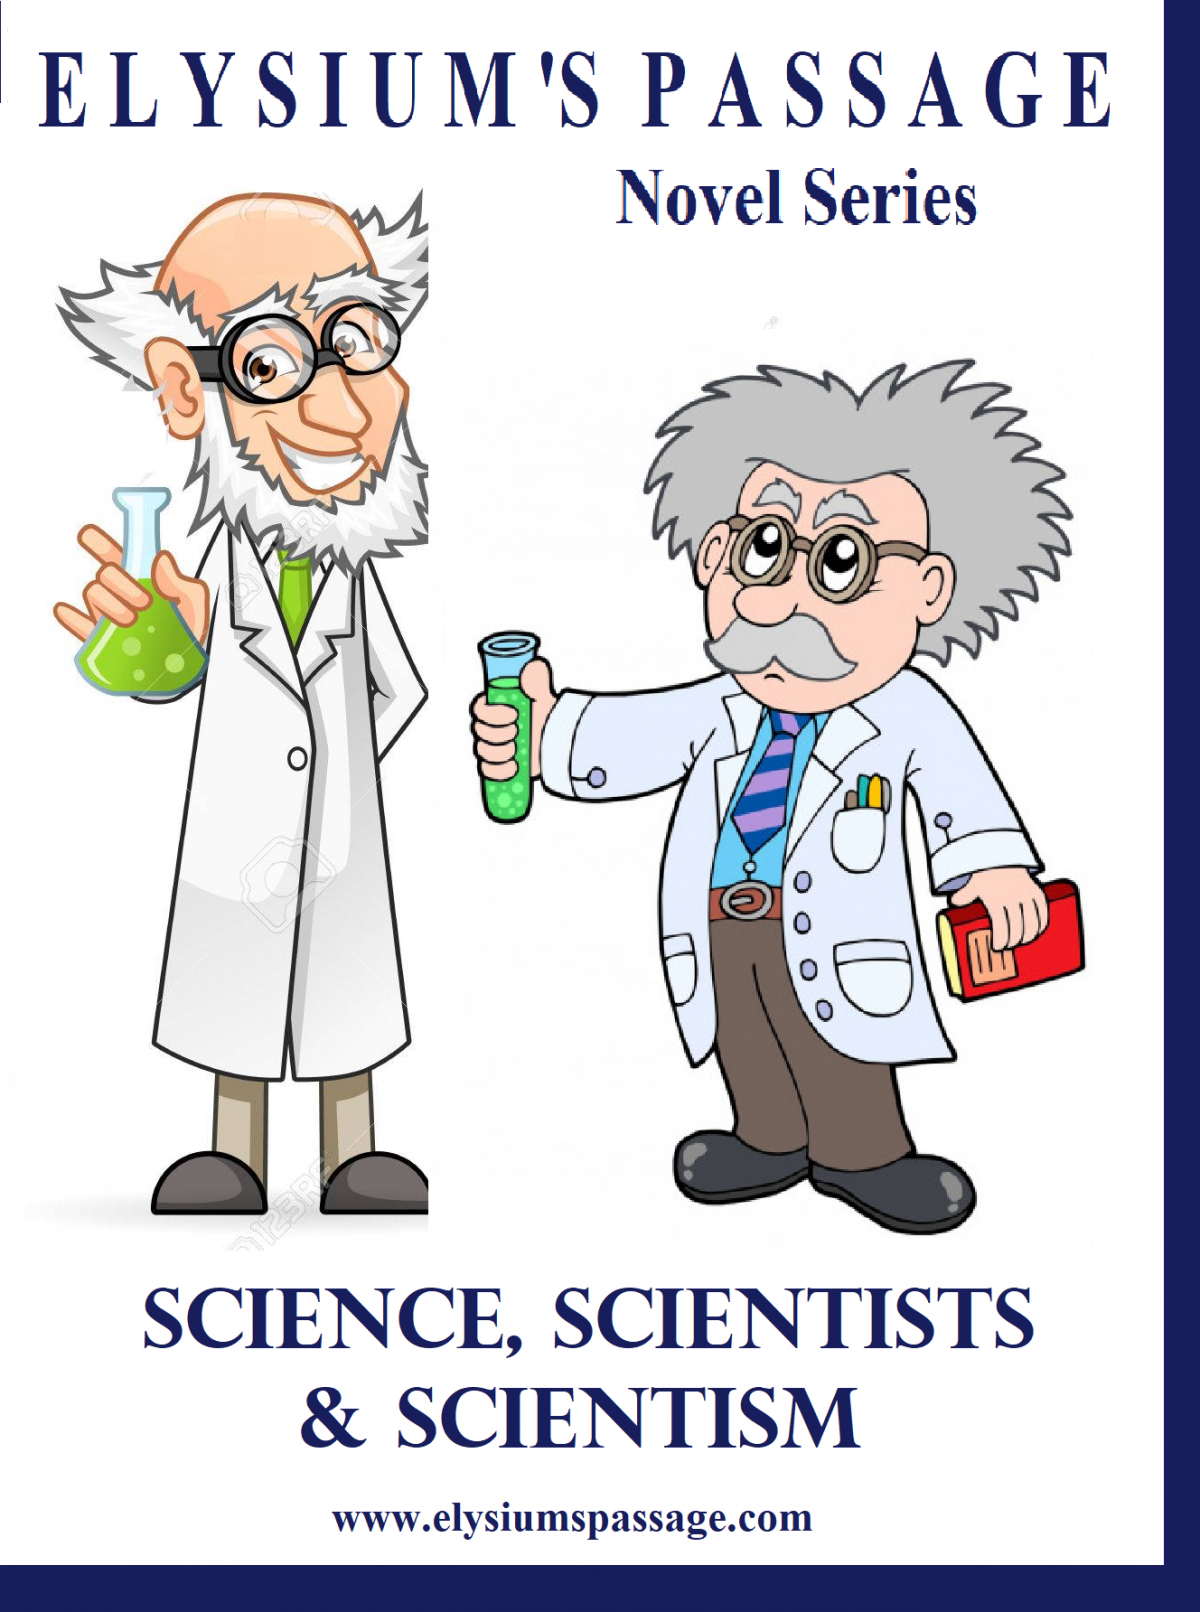 SCIENCE, SCIENTISTS AND SCIENTISM